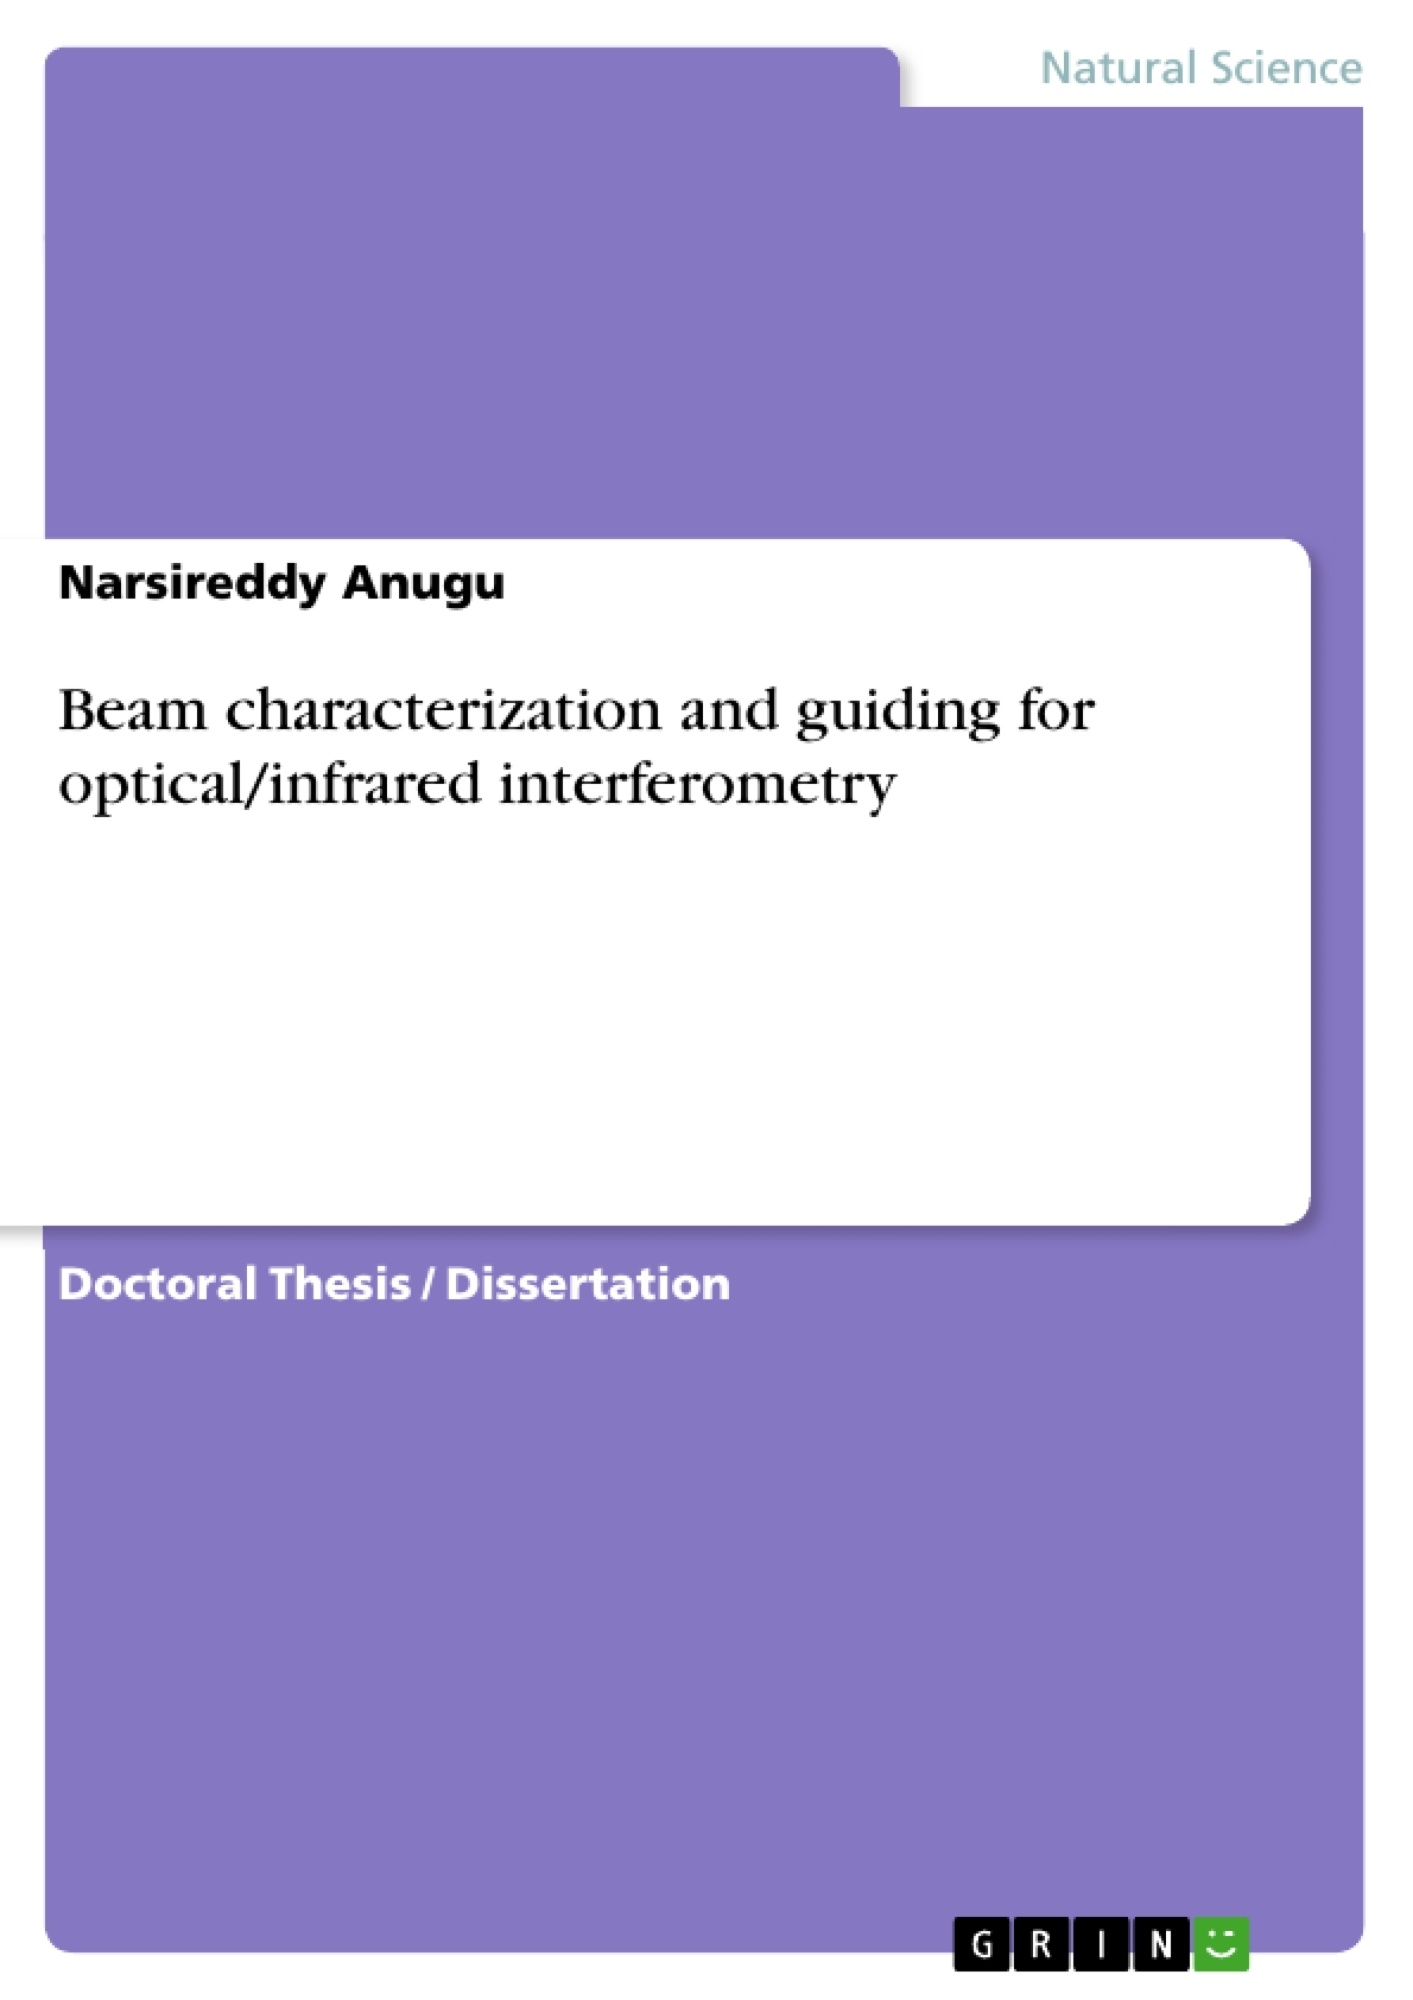 Title: Beam characterization and guiding for optical/infrared interferometry